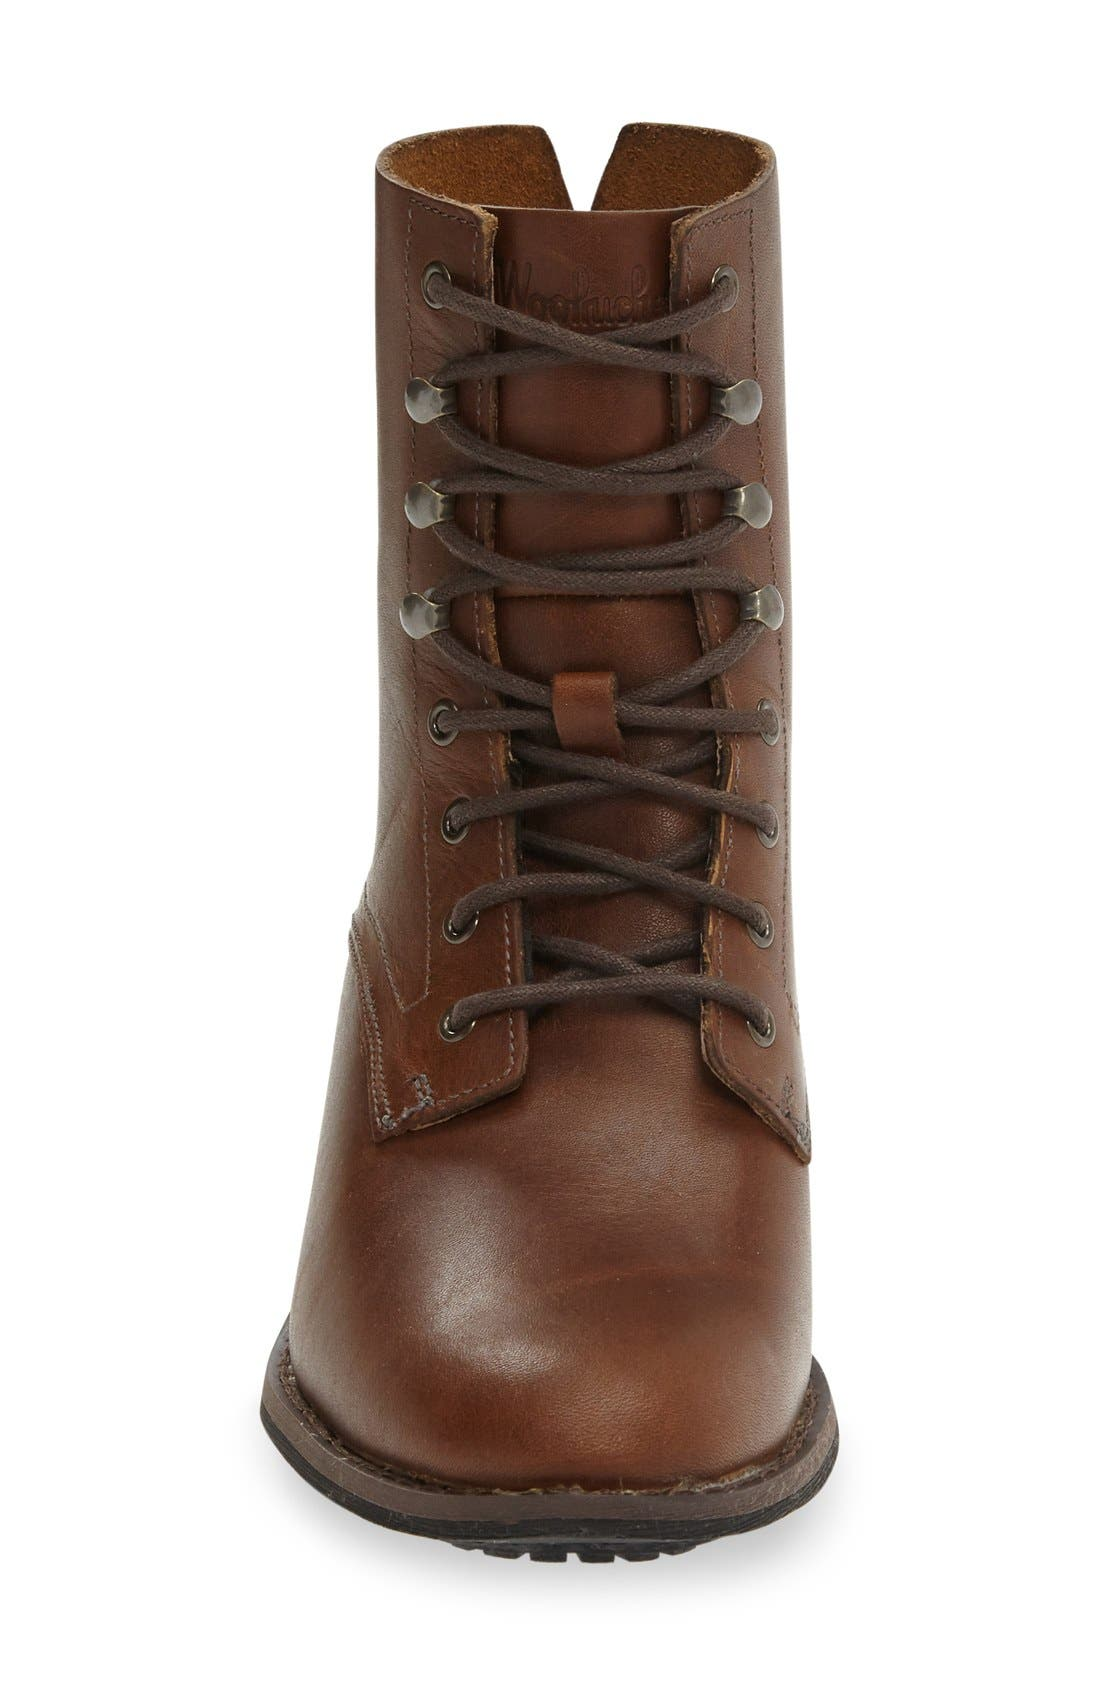 Western Territory Water Resistant Bootie,                             Alternate thumbnail 3, color,                             Ginger Leather